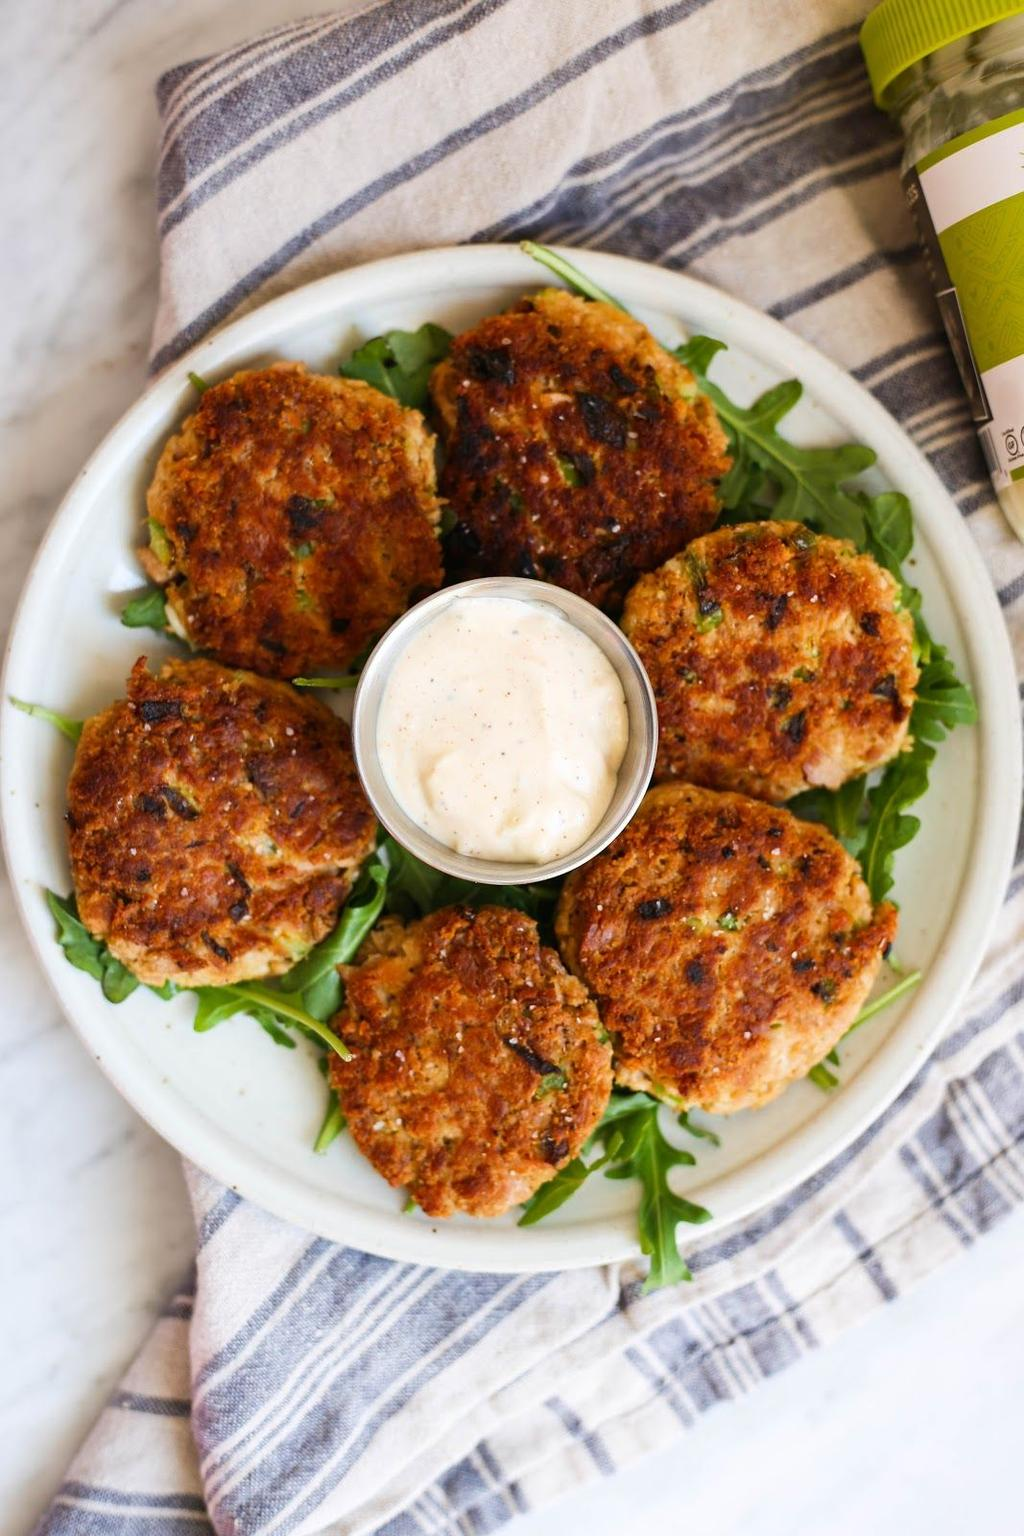 Monday Whole30 Tuna Cakes